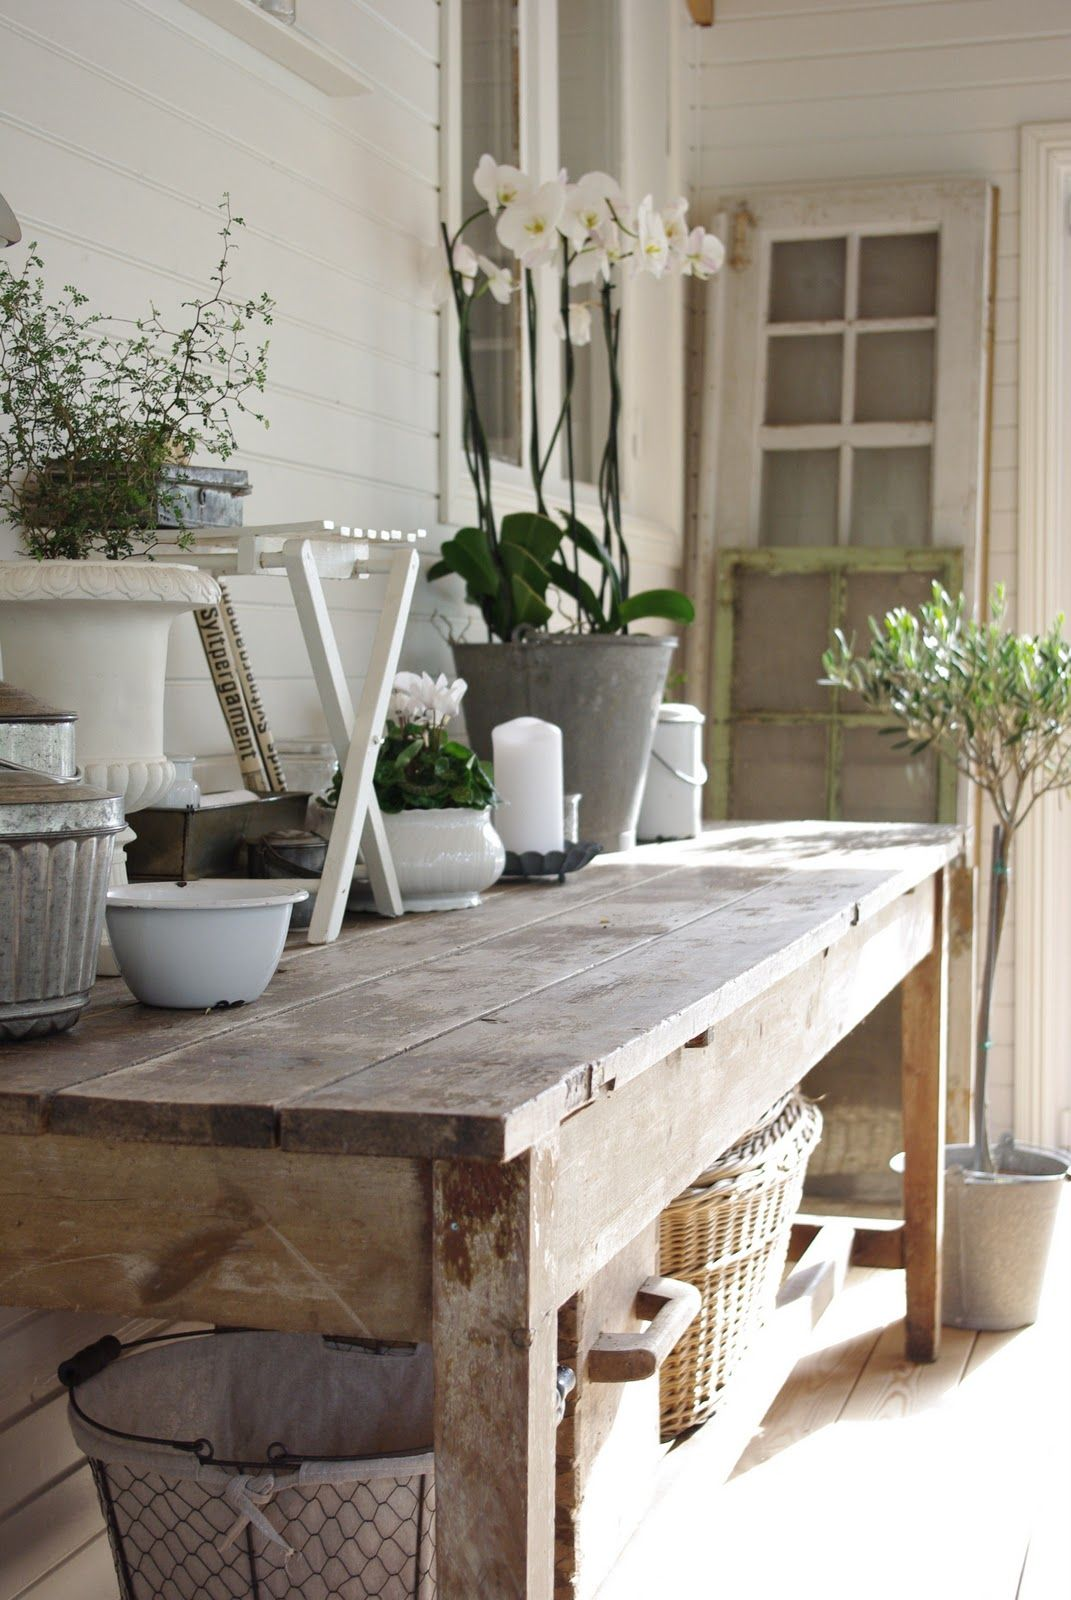 french country decoration decor inspiration white shabbychic french brocante vintage distressed interior home porch outdoor